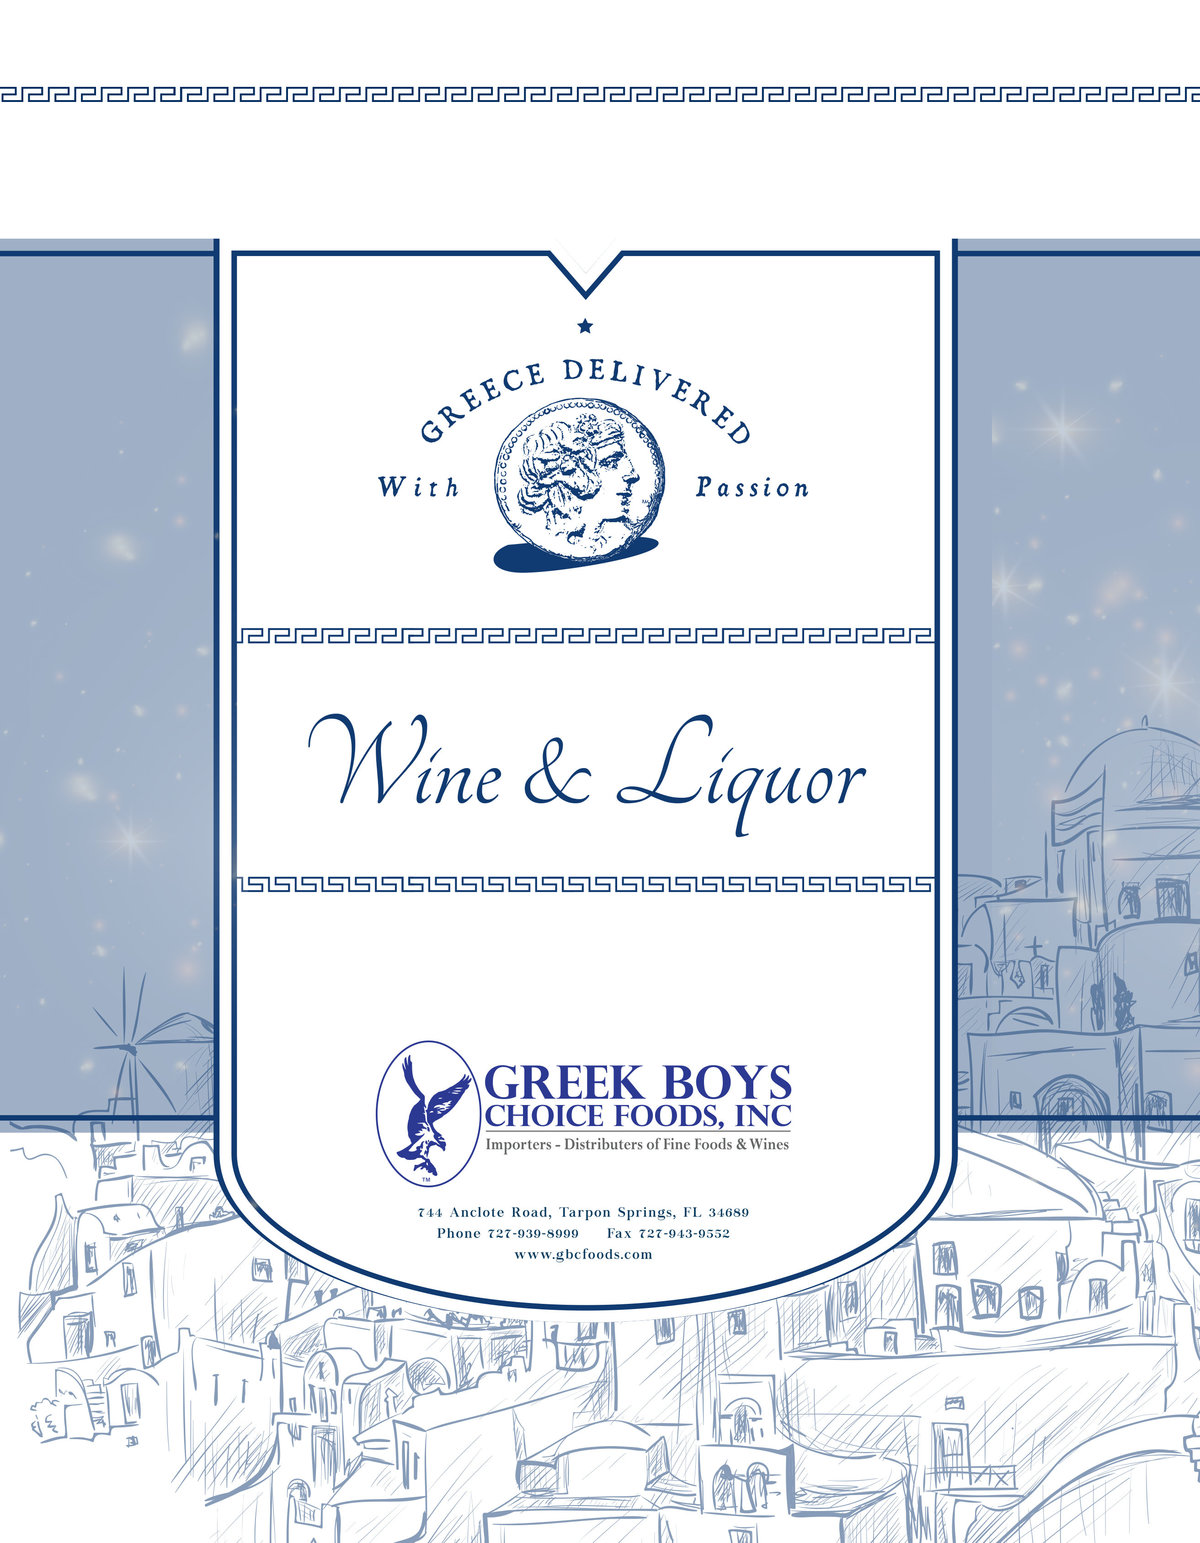 GreekBoys_Wine&Liquor_Page_01